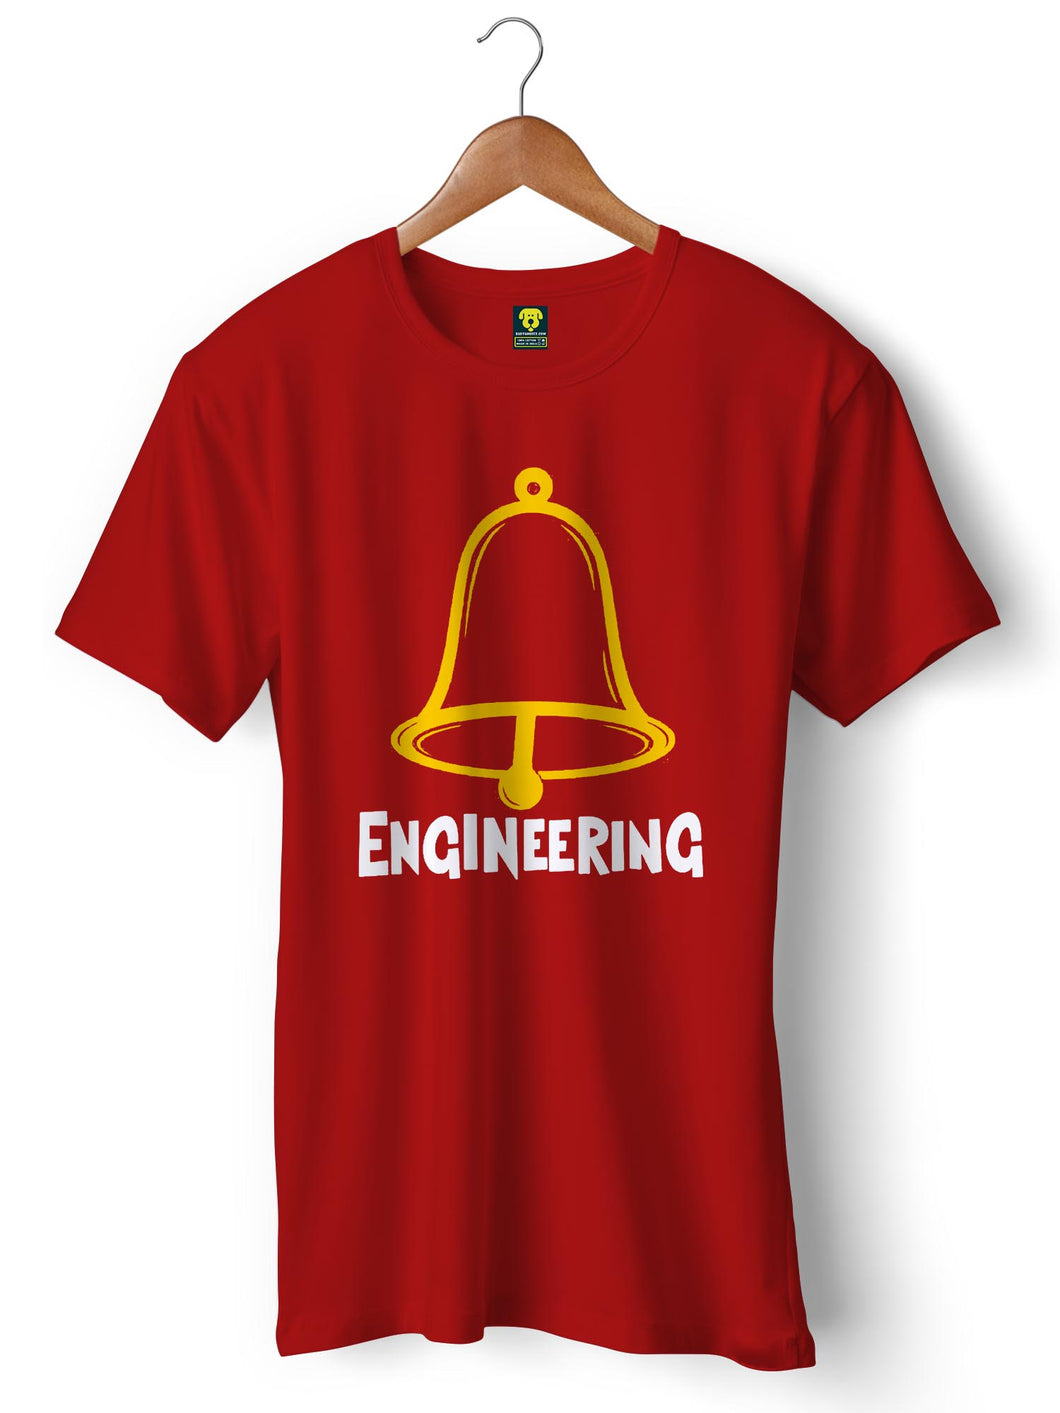 Ghanta Engineering Half Sleeve T-shirt - Badtamees